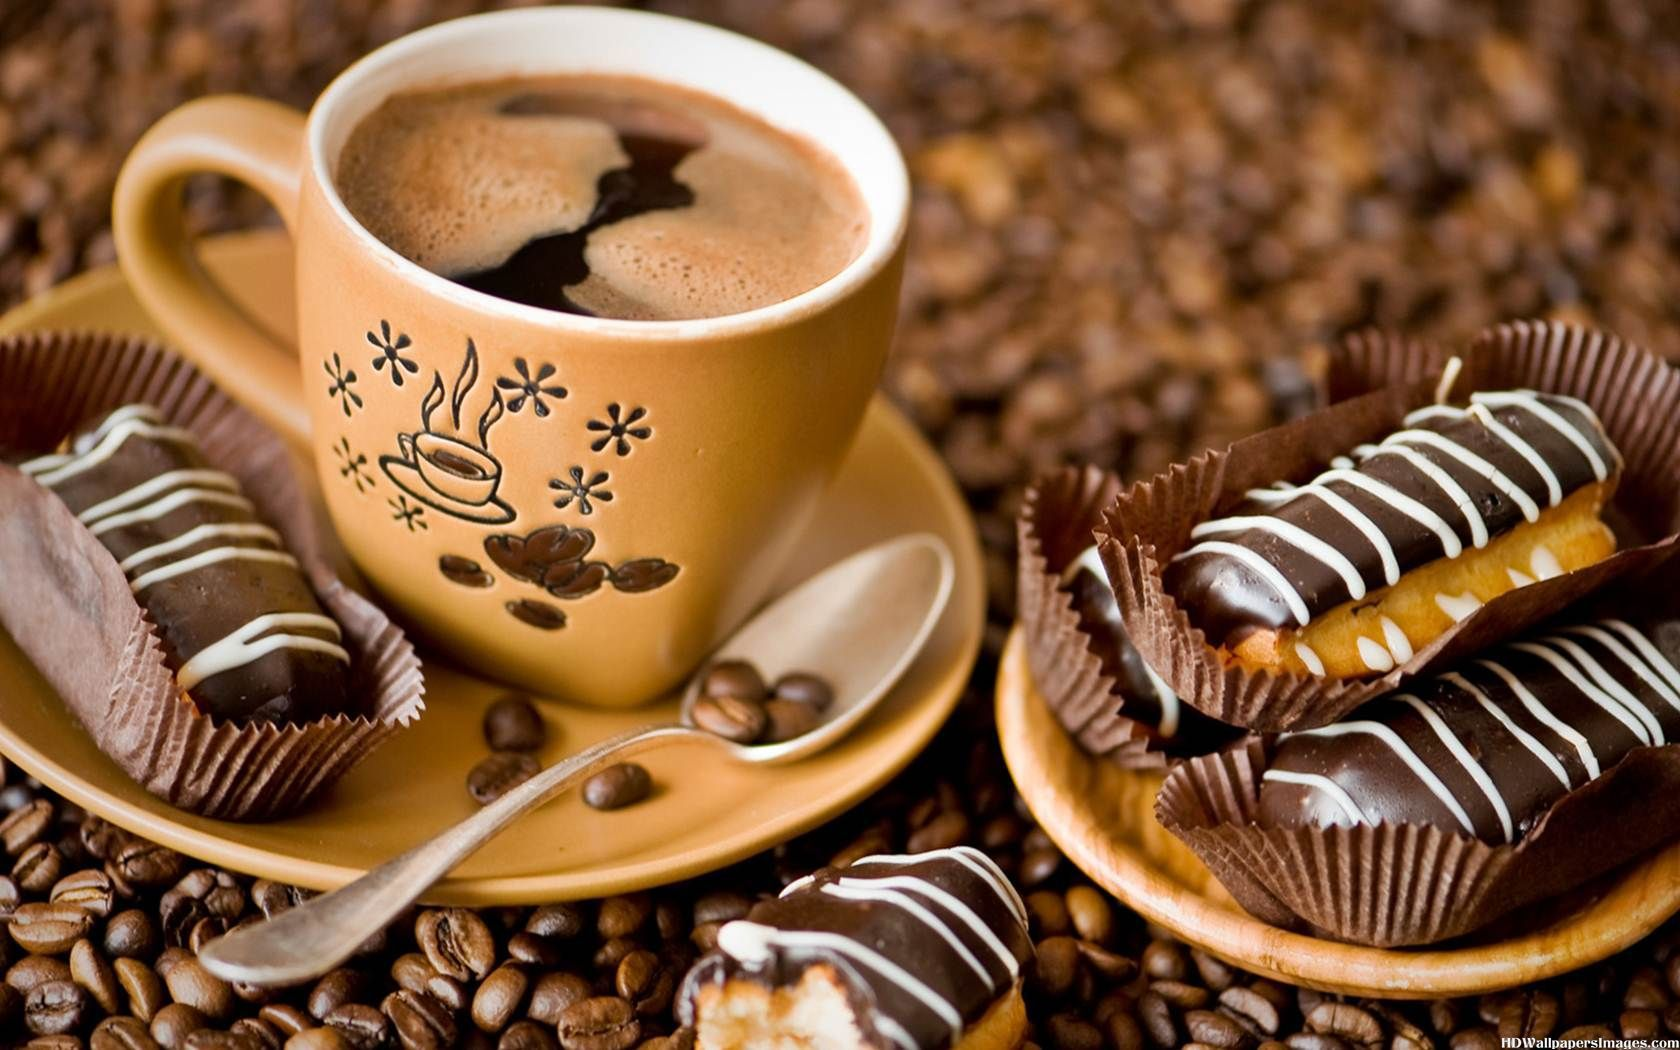 Cute Marshmallow Wallpaper Hd Exclusive News For Coffee And Chocolate Lovers Tcm World